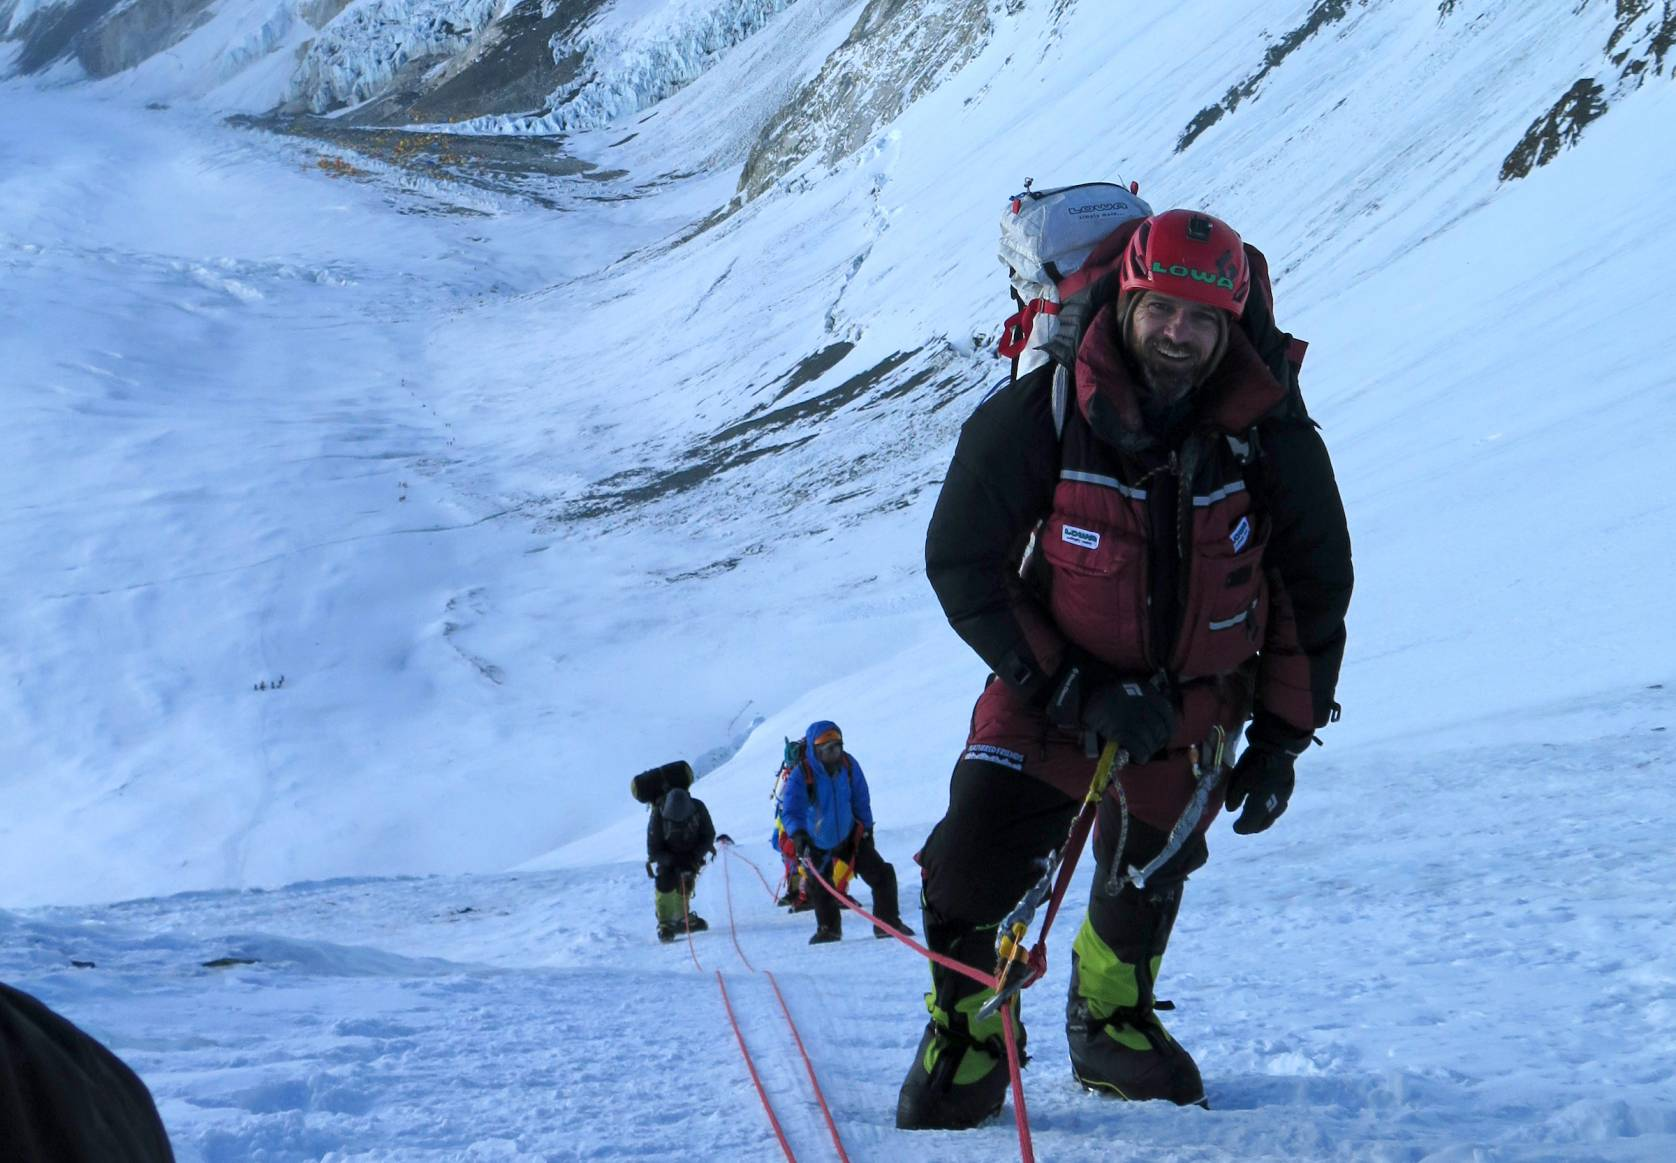 Jim Davidson in Lowa boots and helmet at 23,500 feet up on Everest